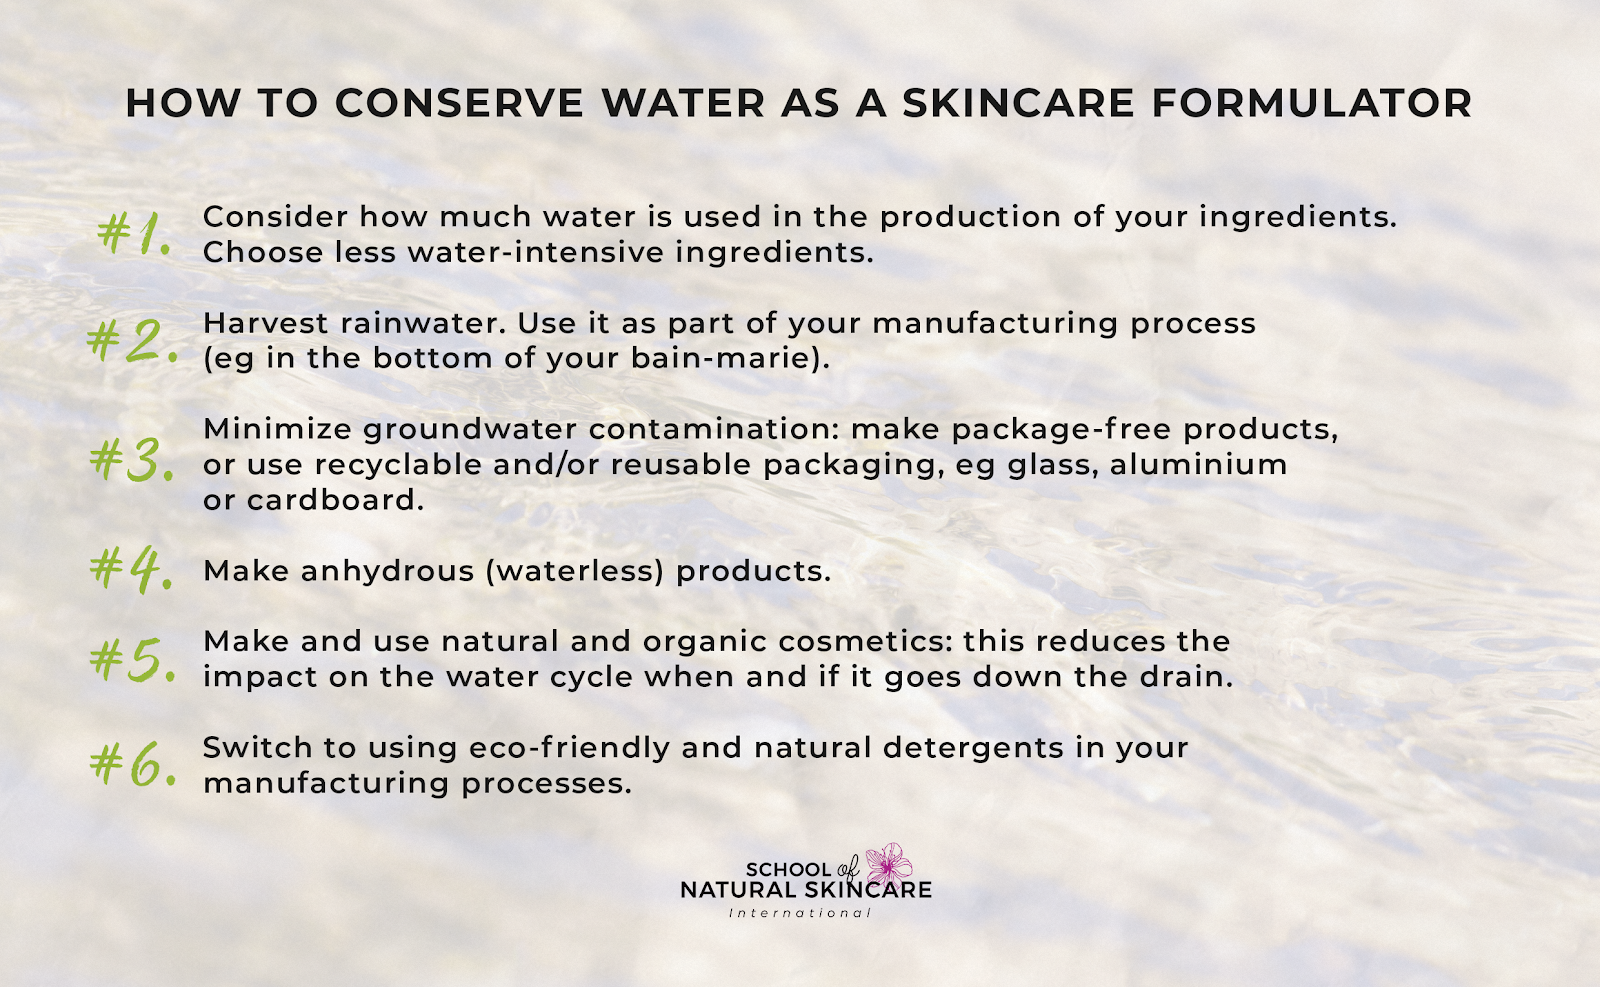 Waterless skincare products: what they are and why to make them Skincare Formulation